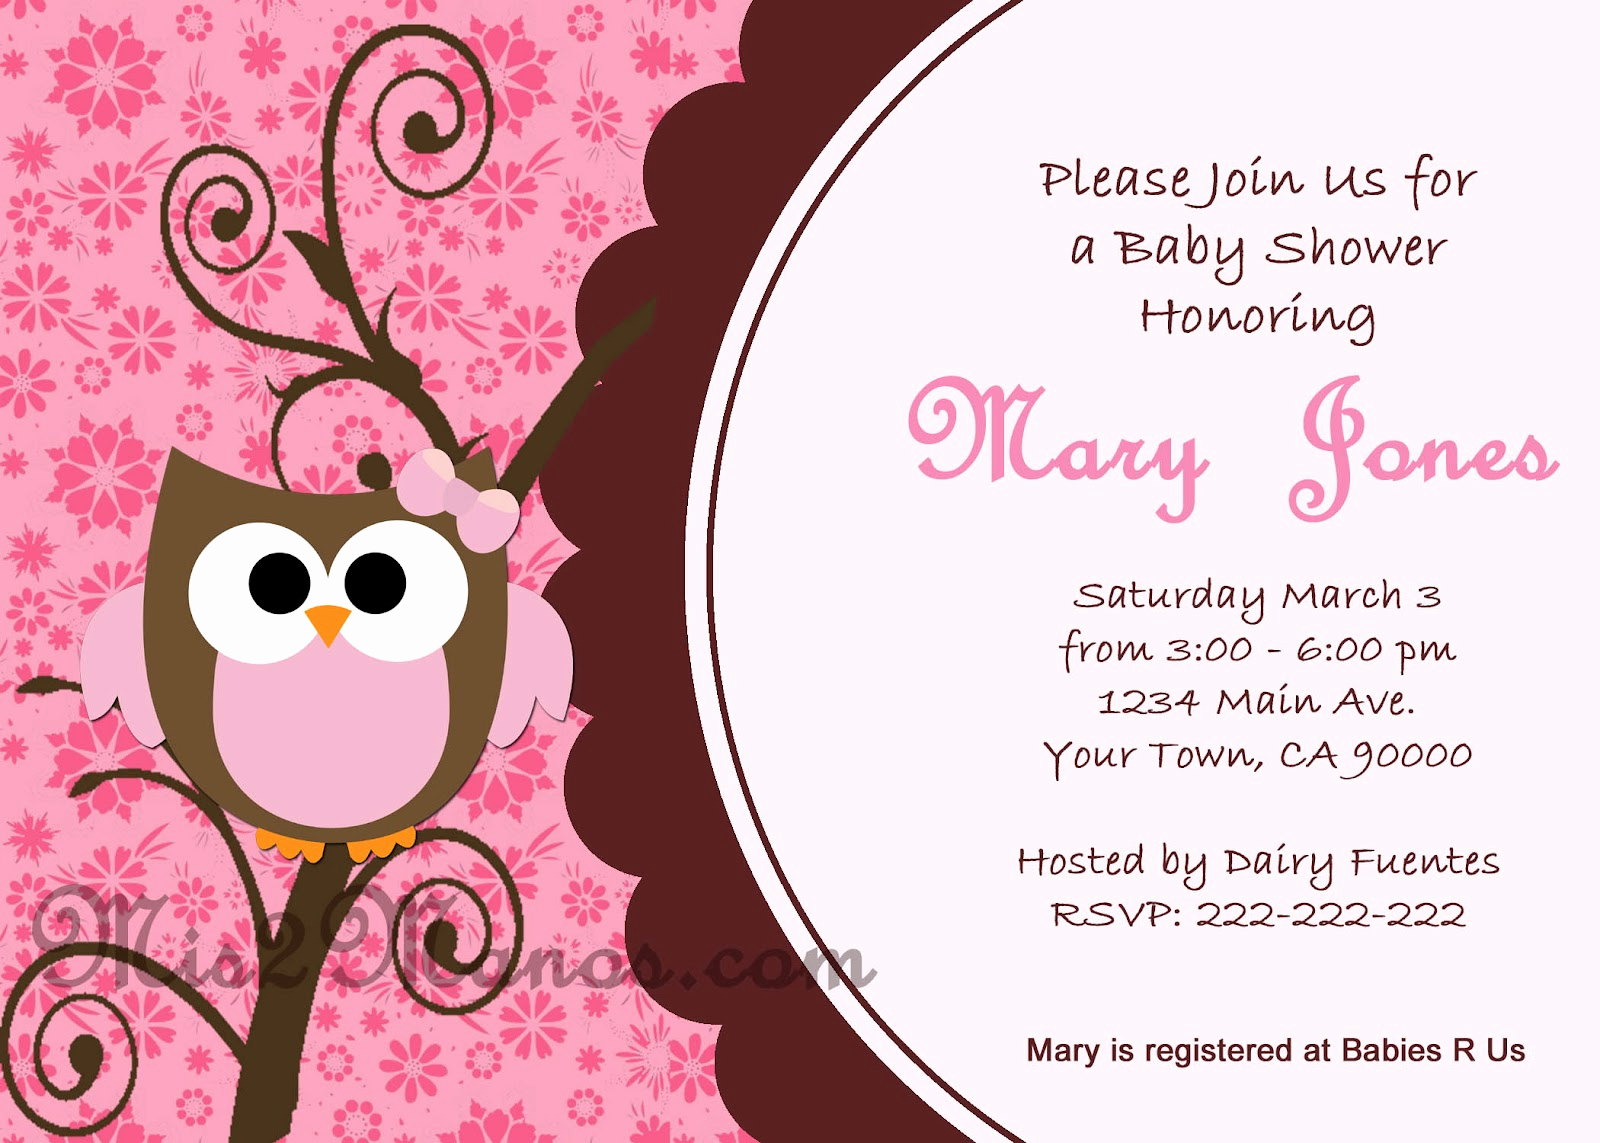 Baby Shower Invitation Templates Beautiful Mis 2 Manos Made by My Hands Water Bottle Labels Baby